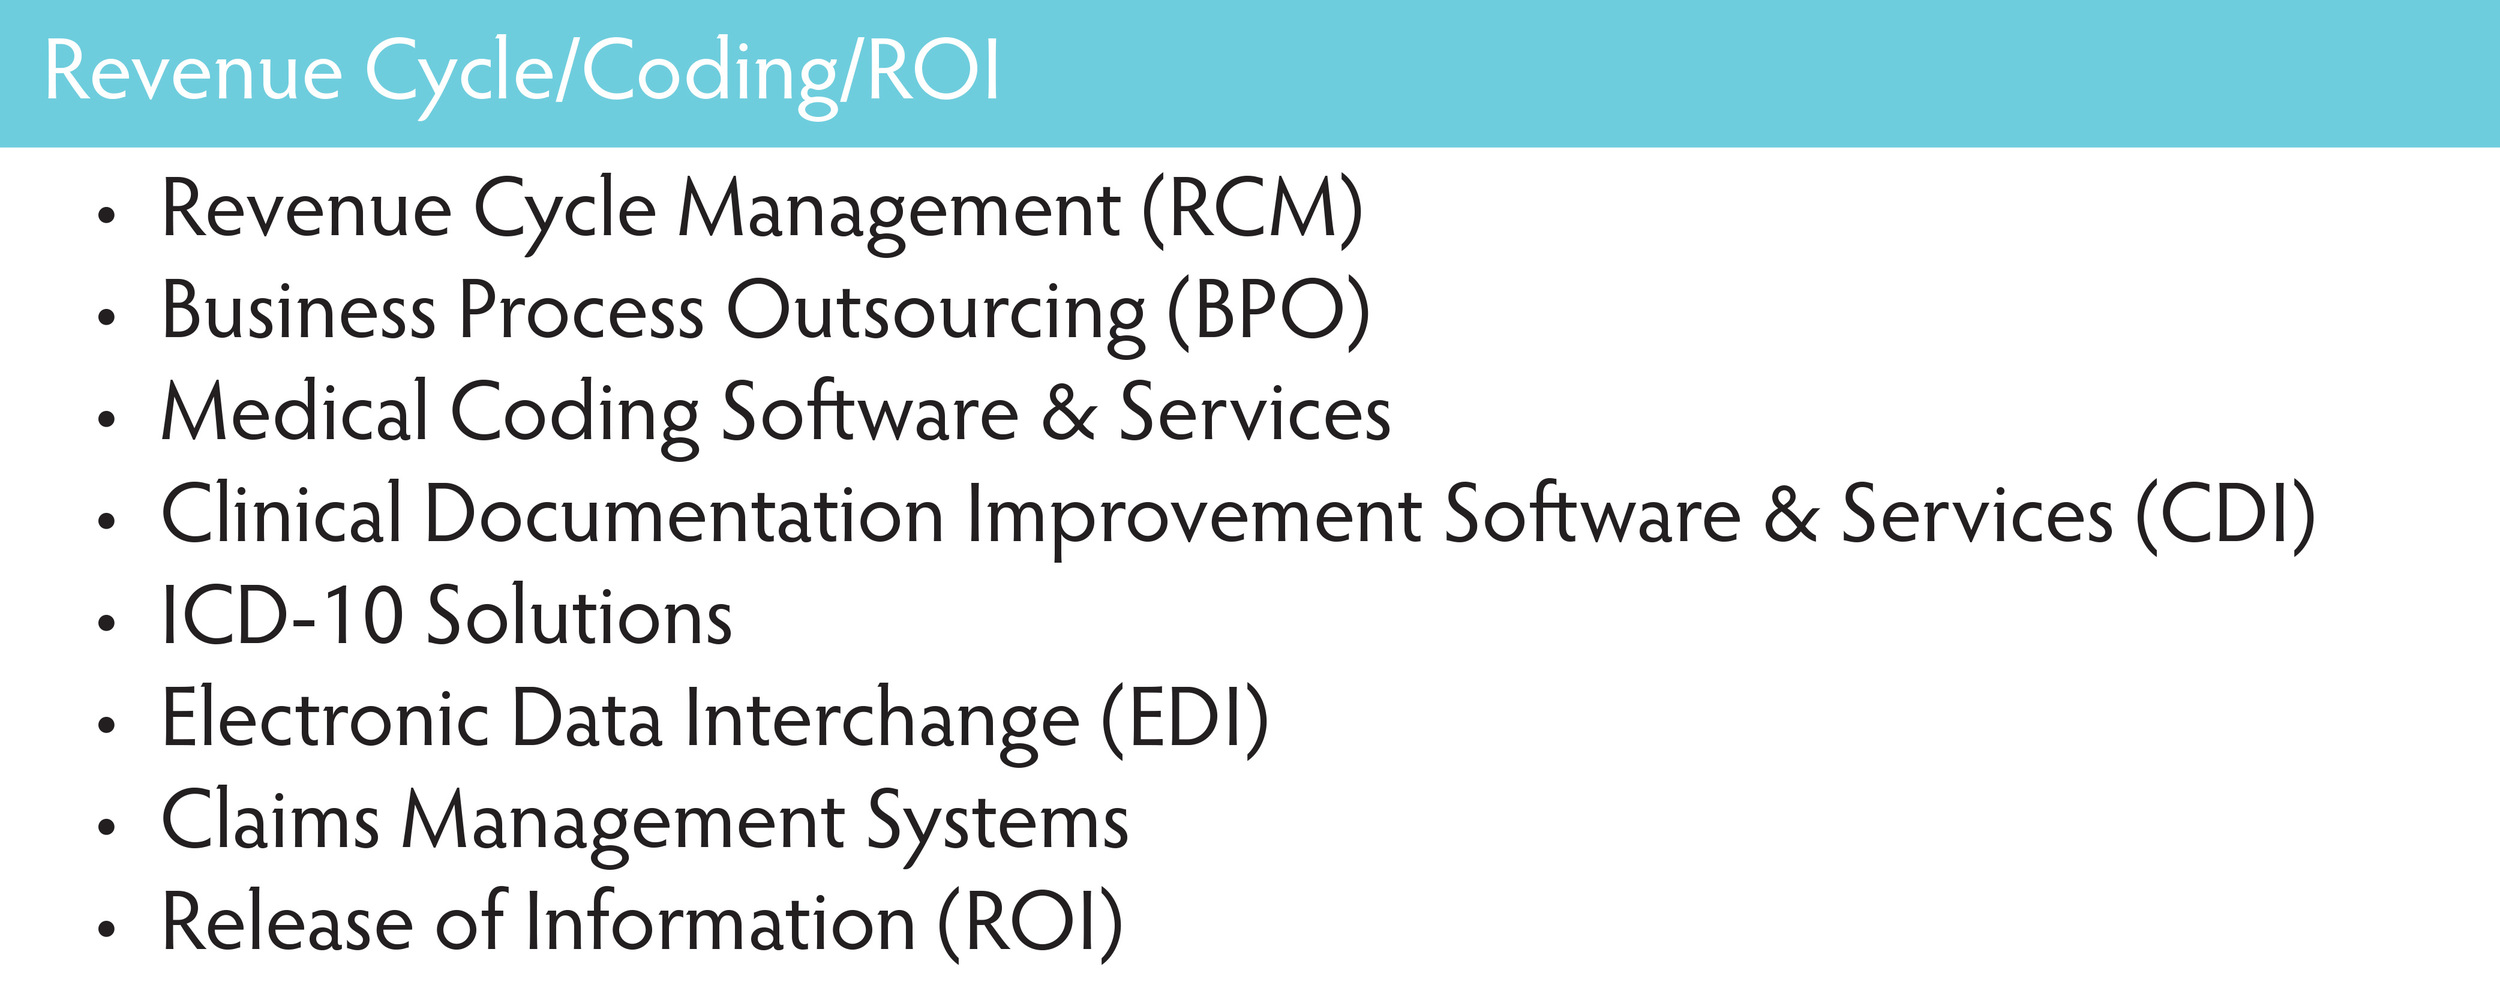 revenue-cycle-coding-roi-recruiting-talent-management.jpg